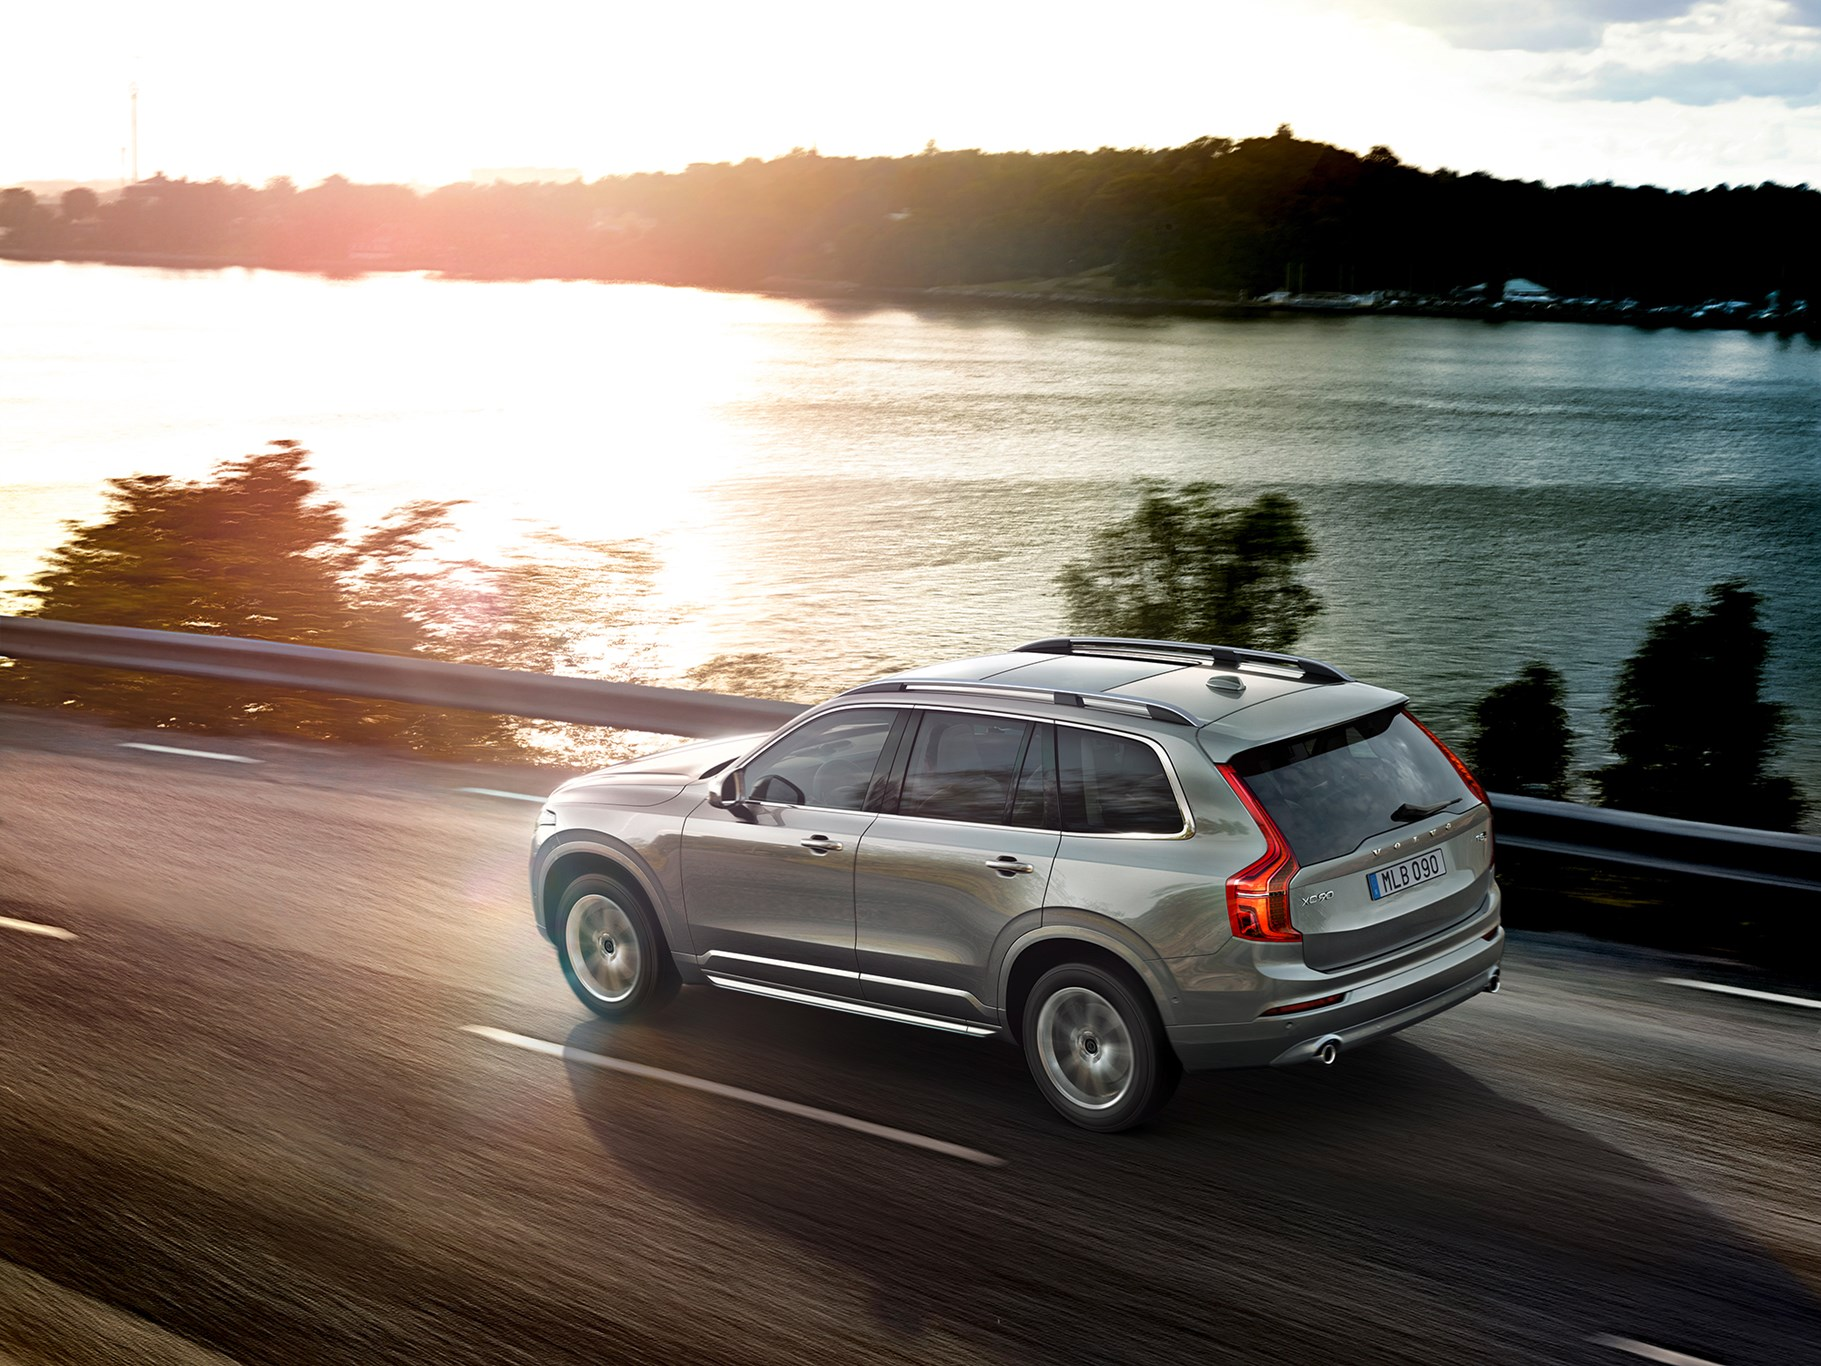 r volvo the articles en car sporty styling design guide